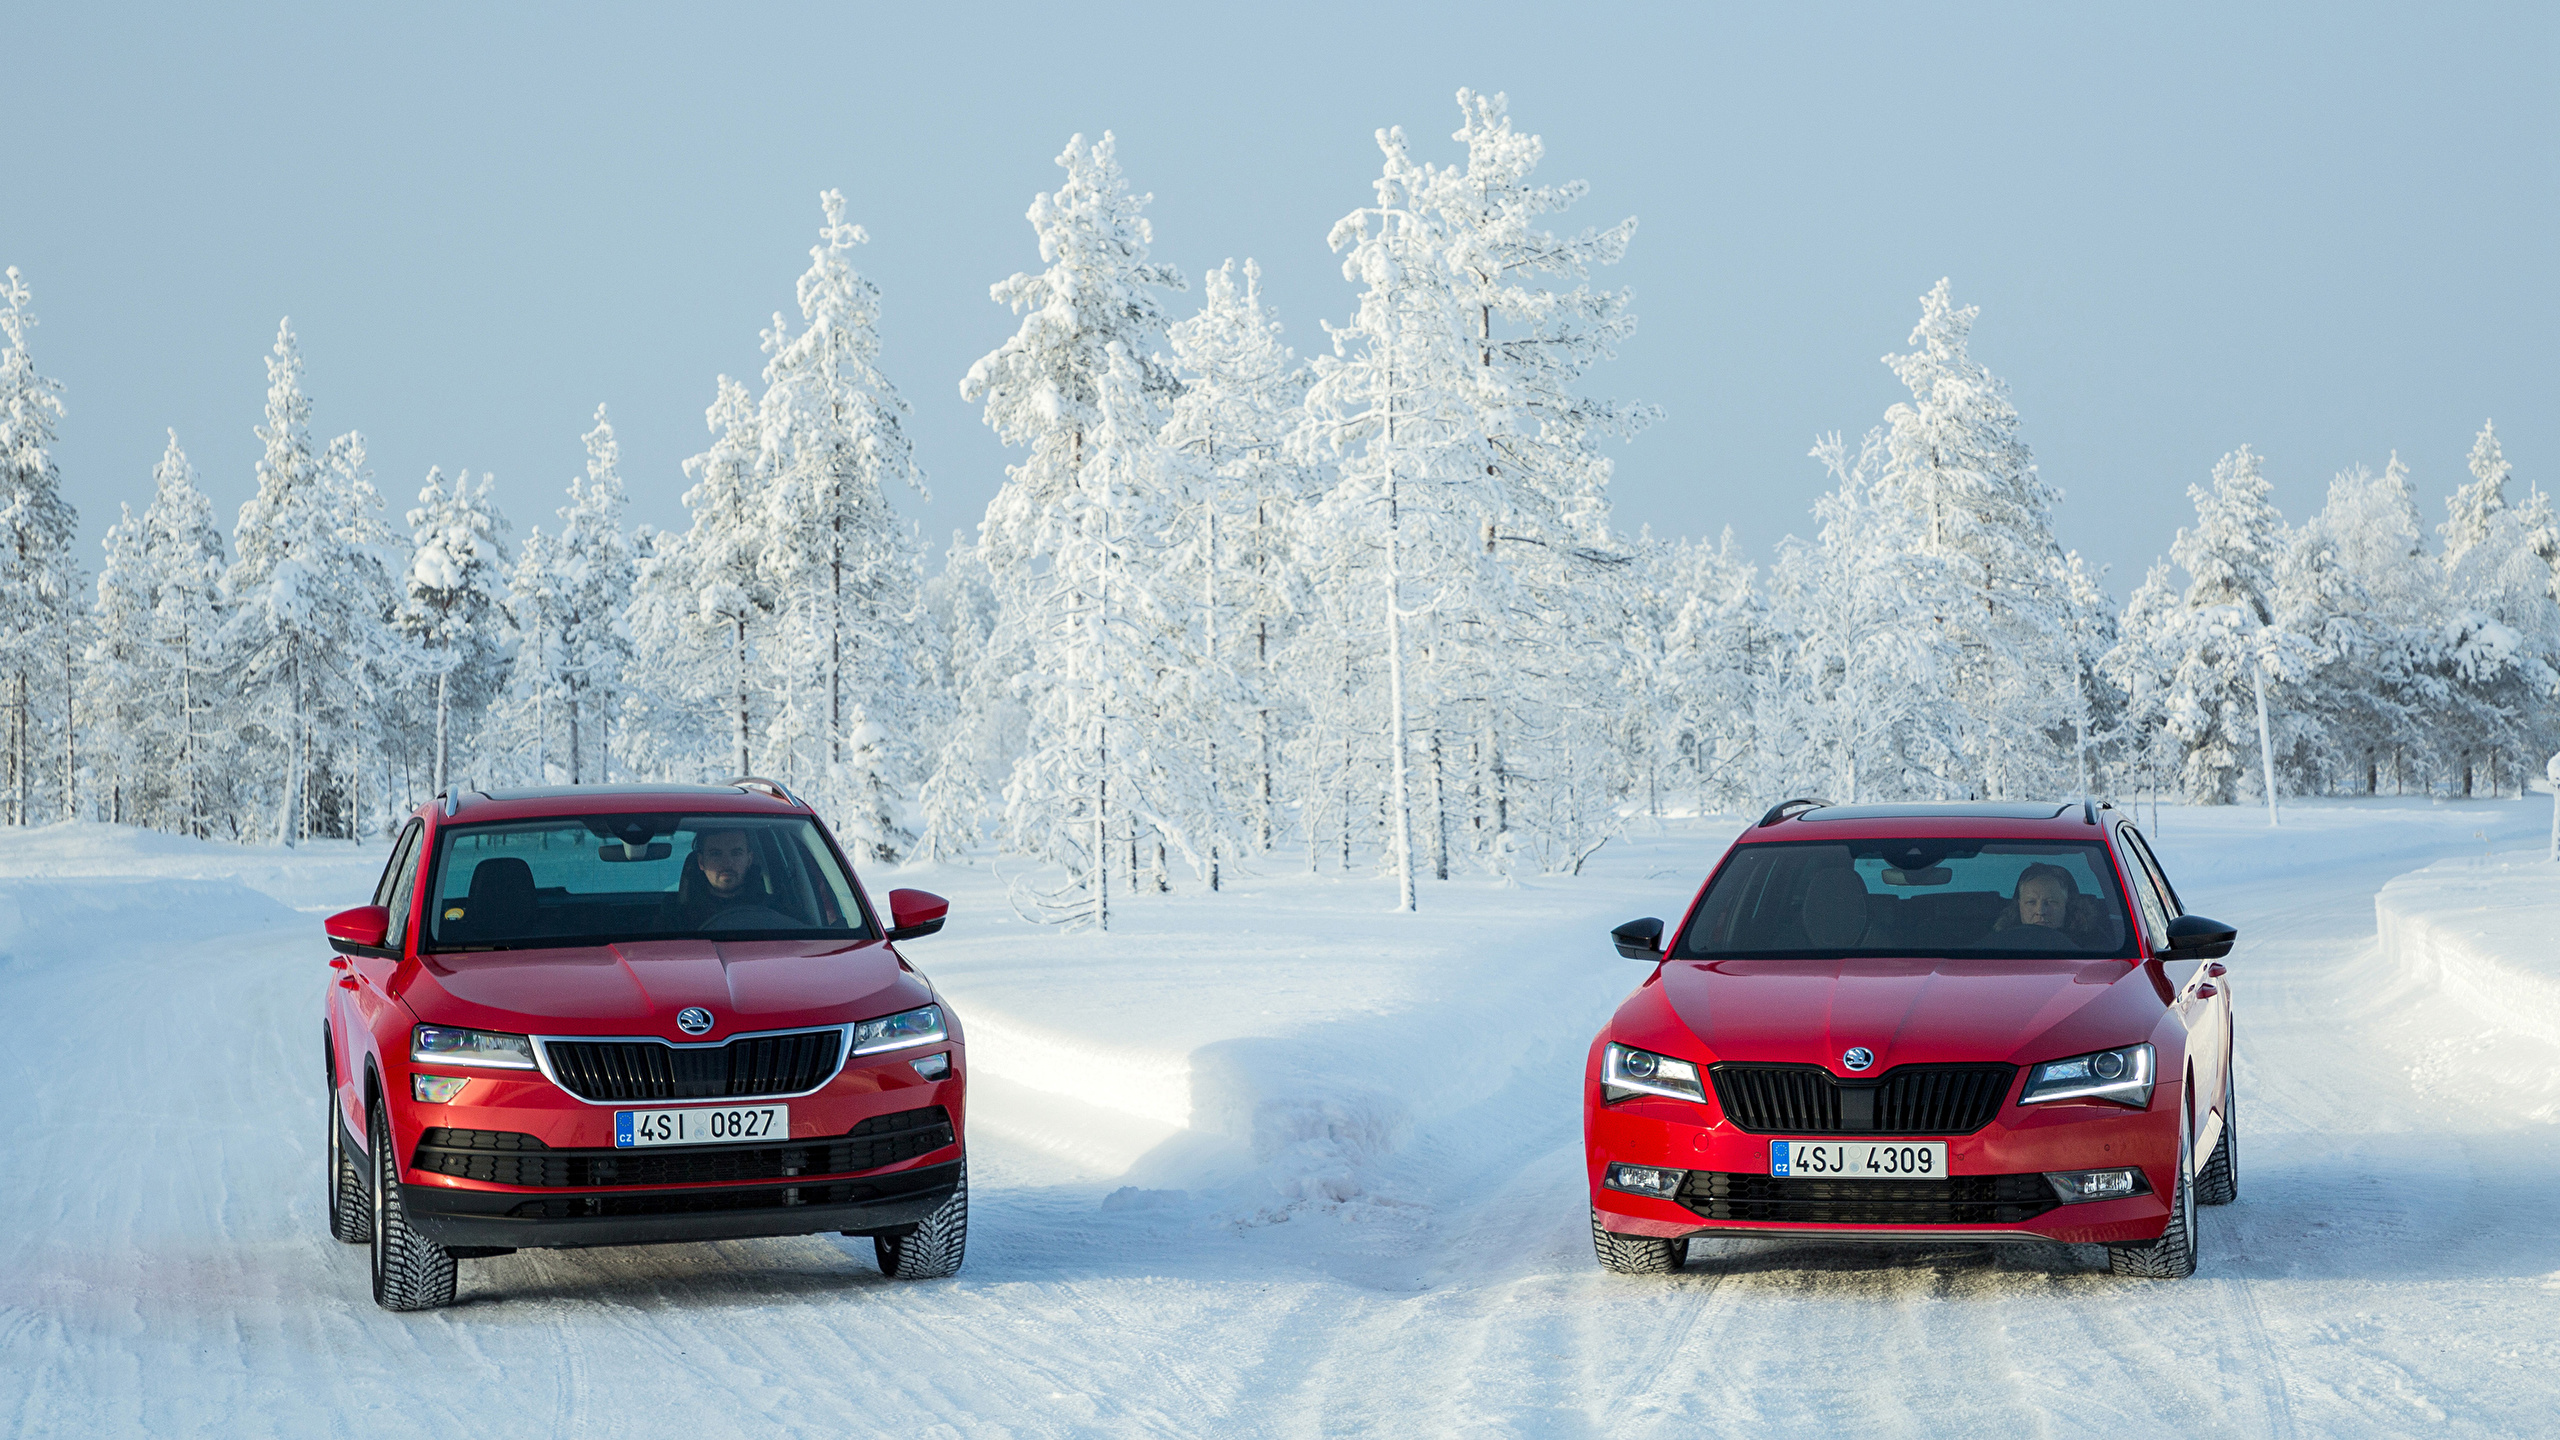 Picture Skoda Superb Karoq 2 Red Winter Snow Automobile 2560x1440